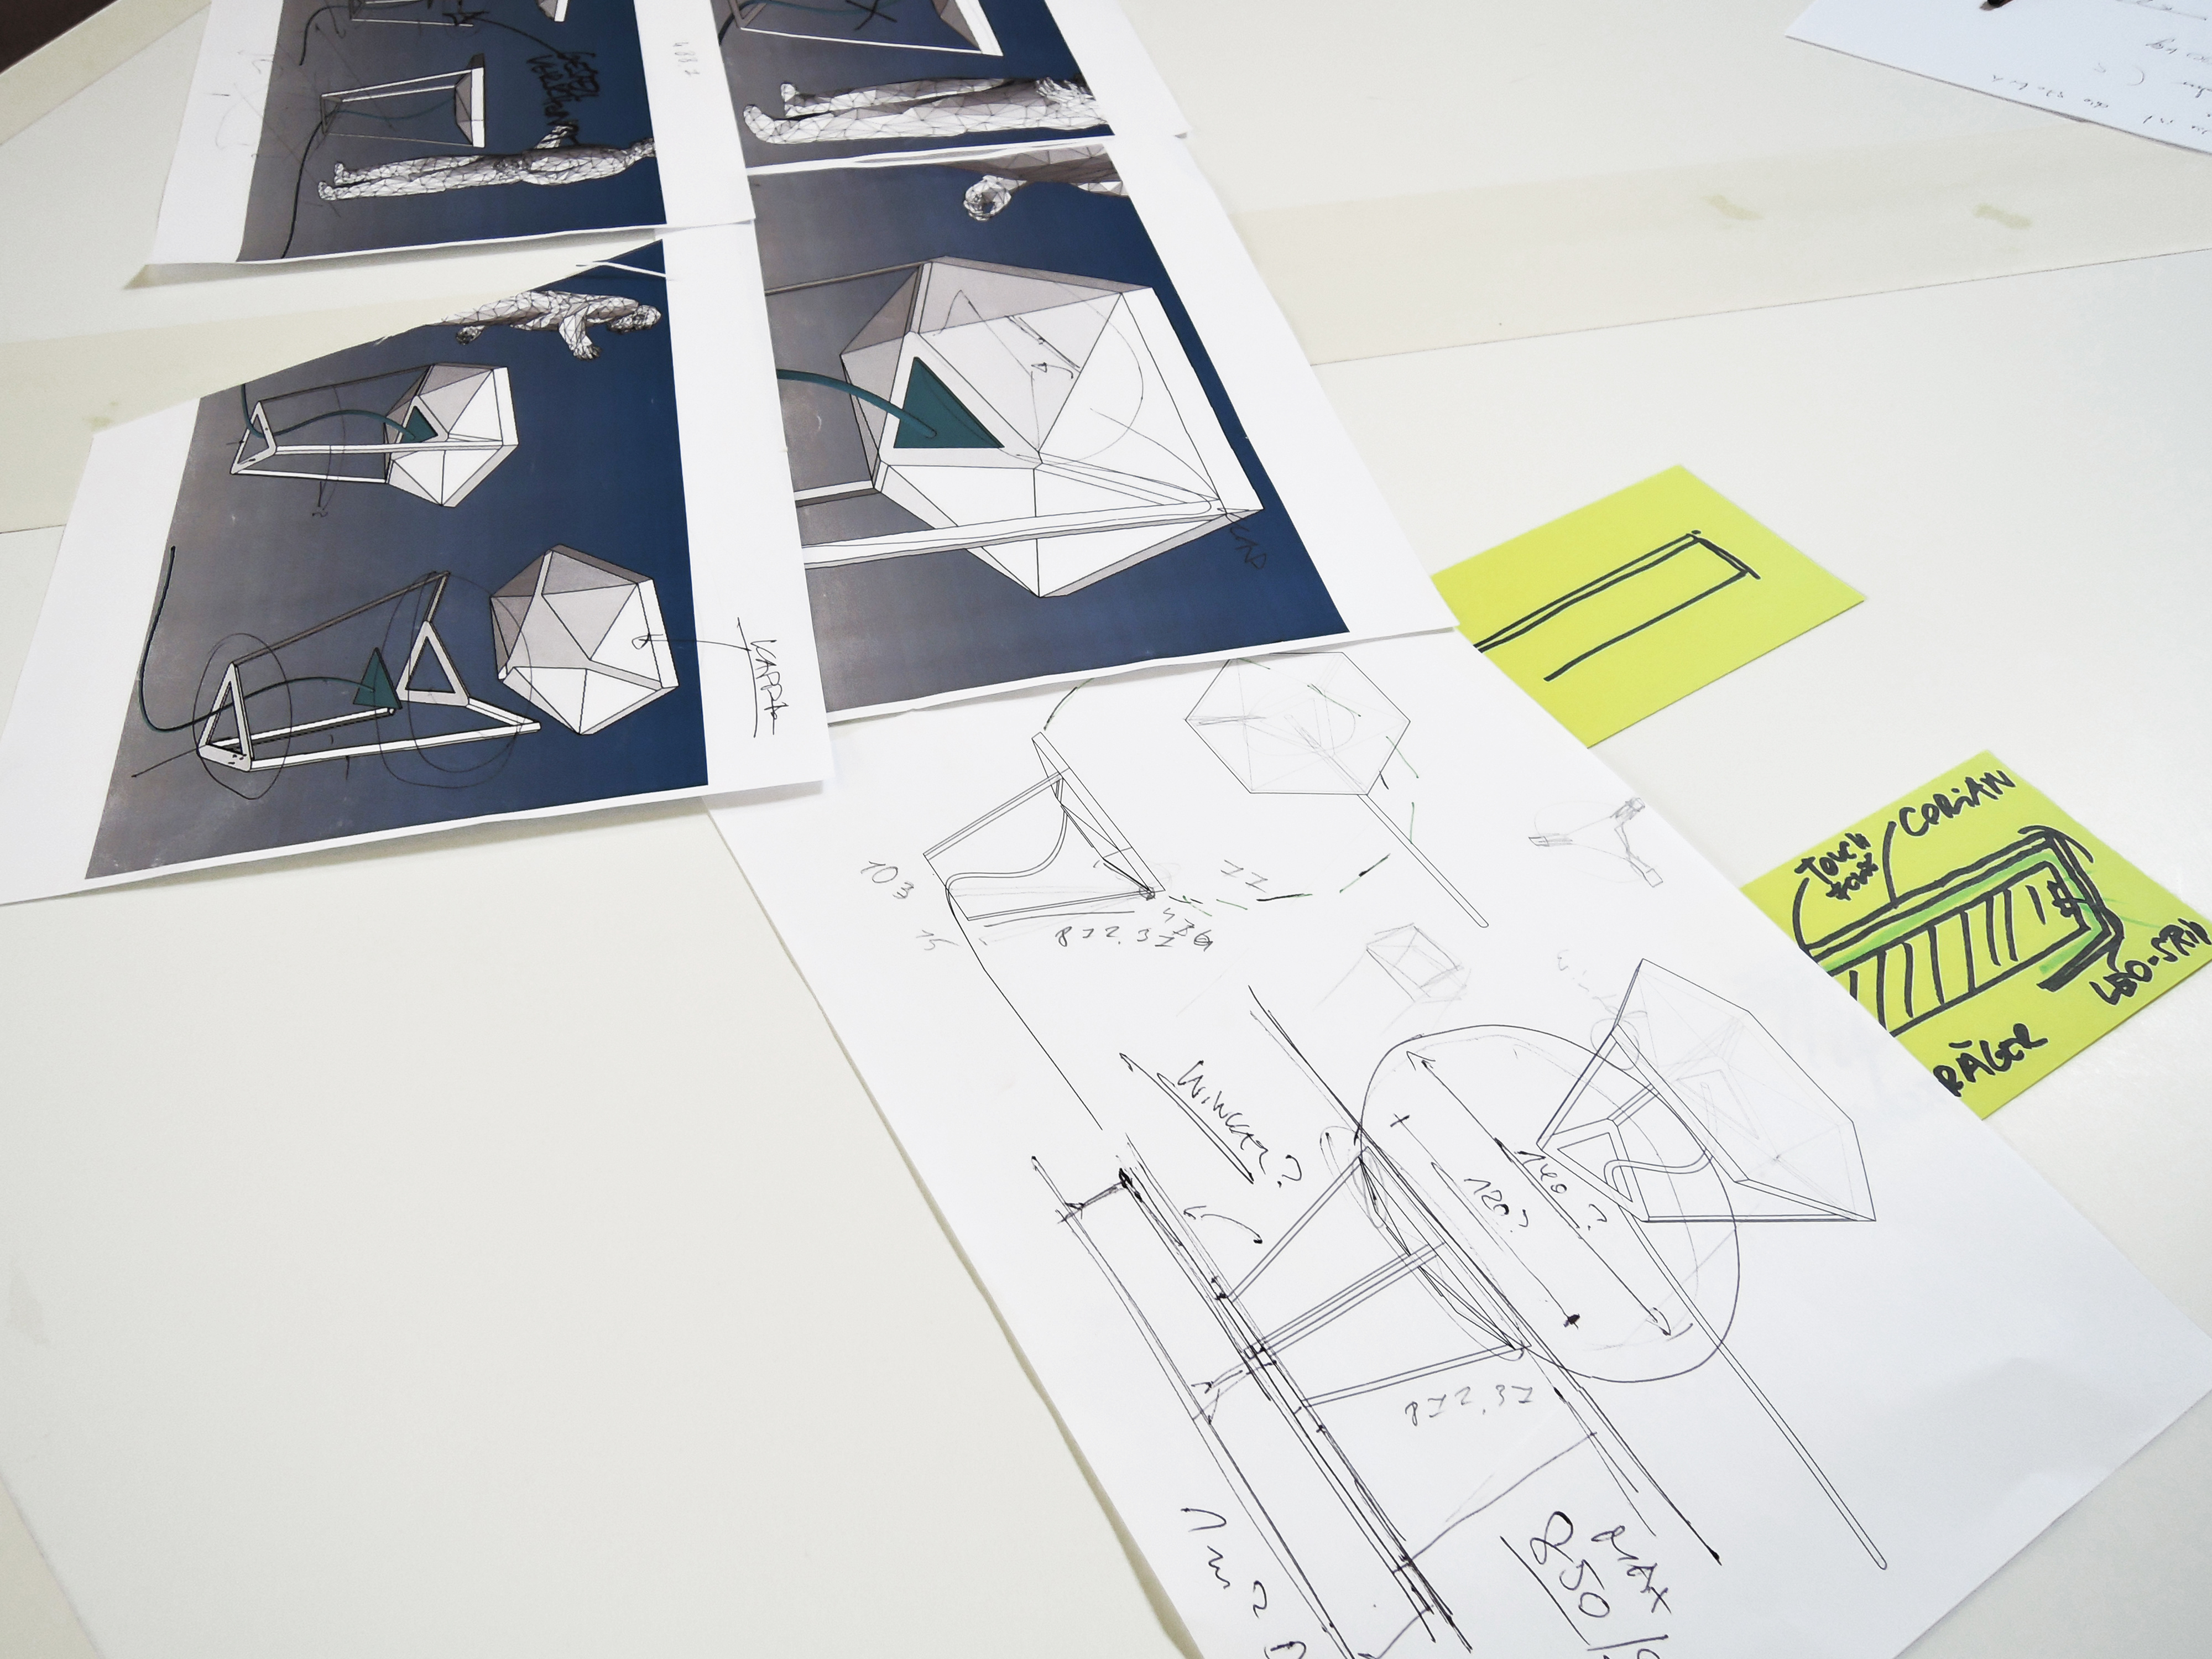 Sketches and technical drawings for the Innodesk